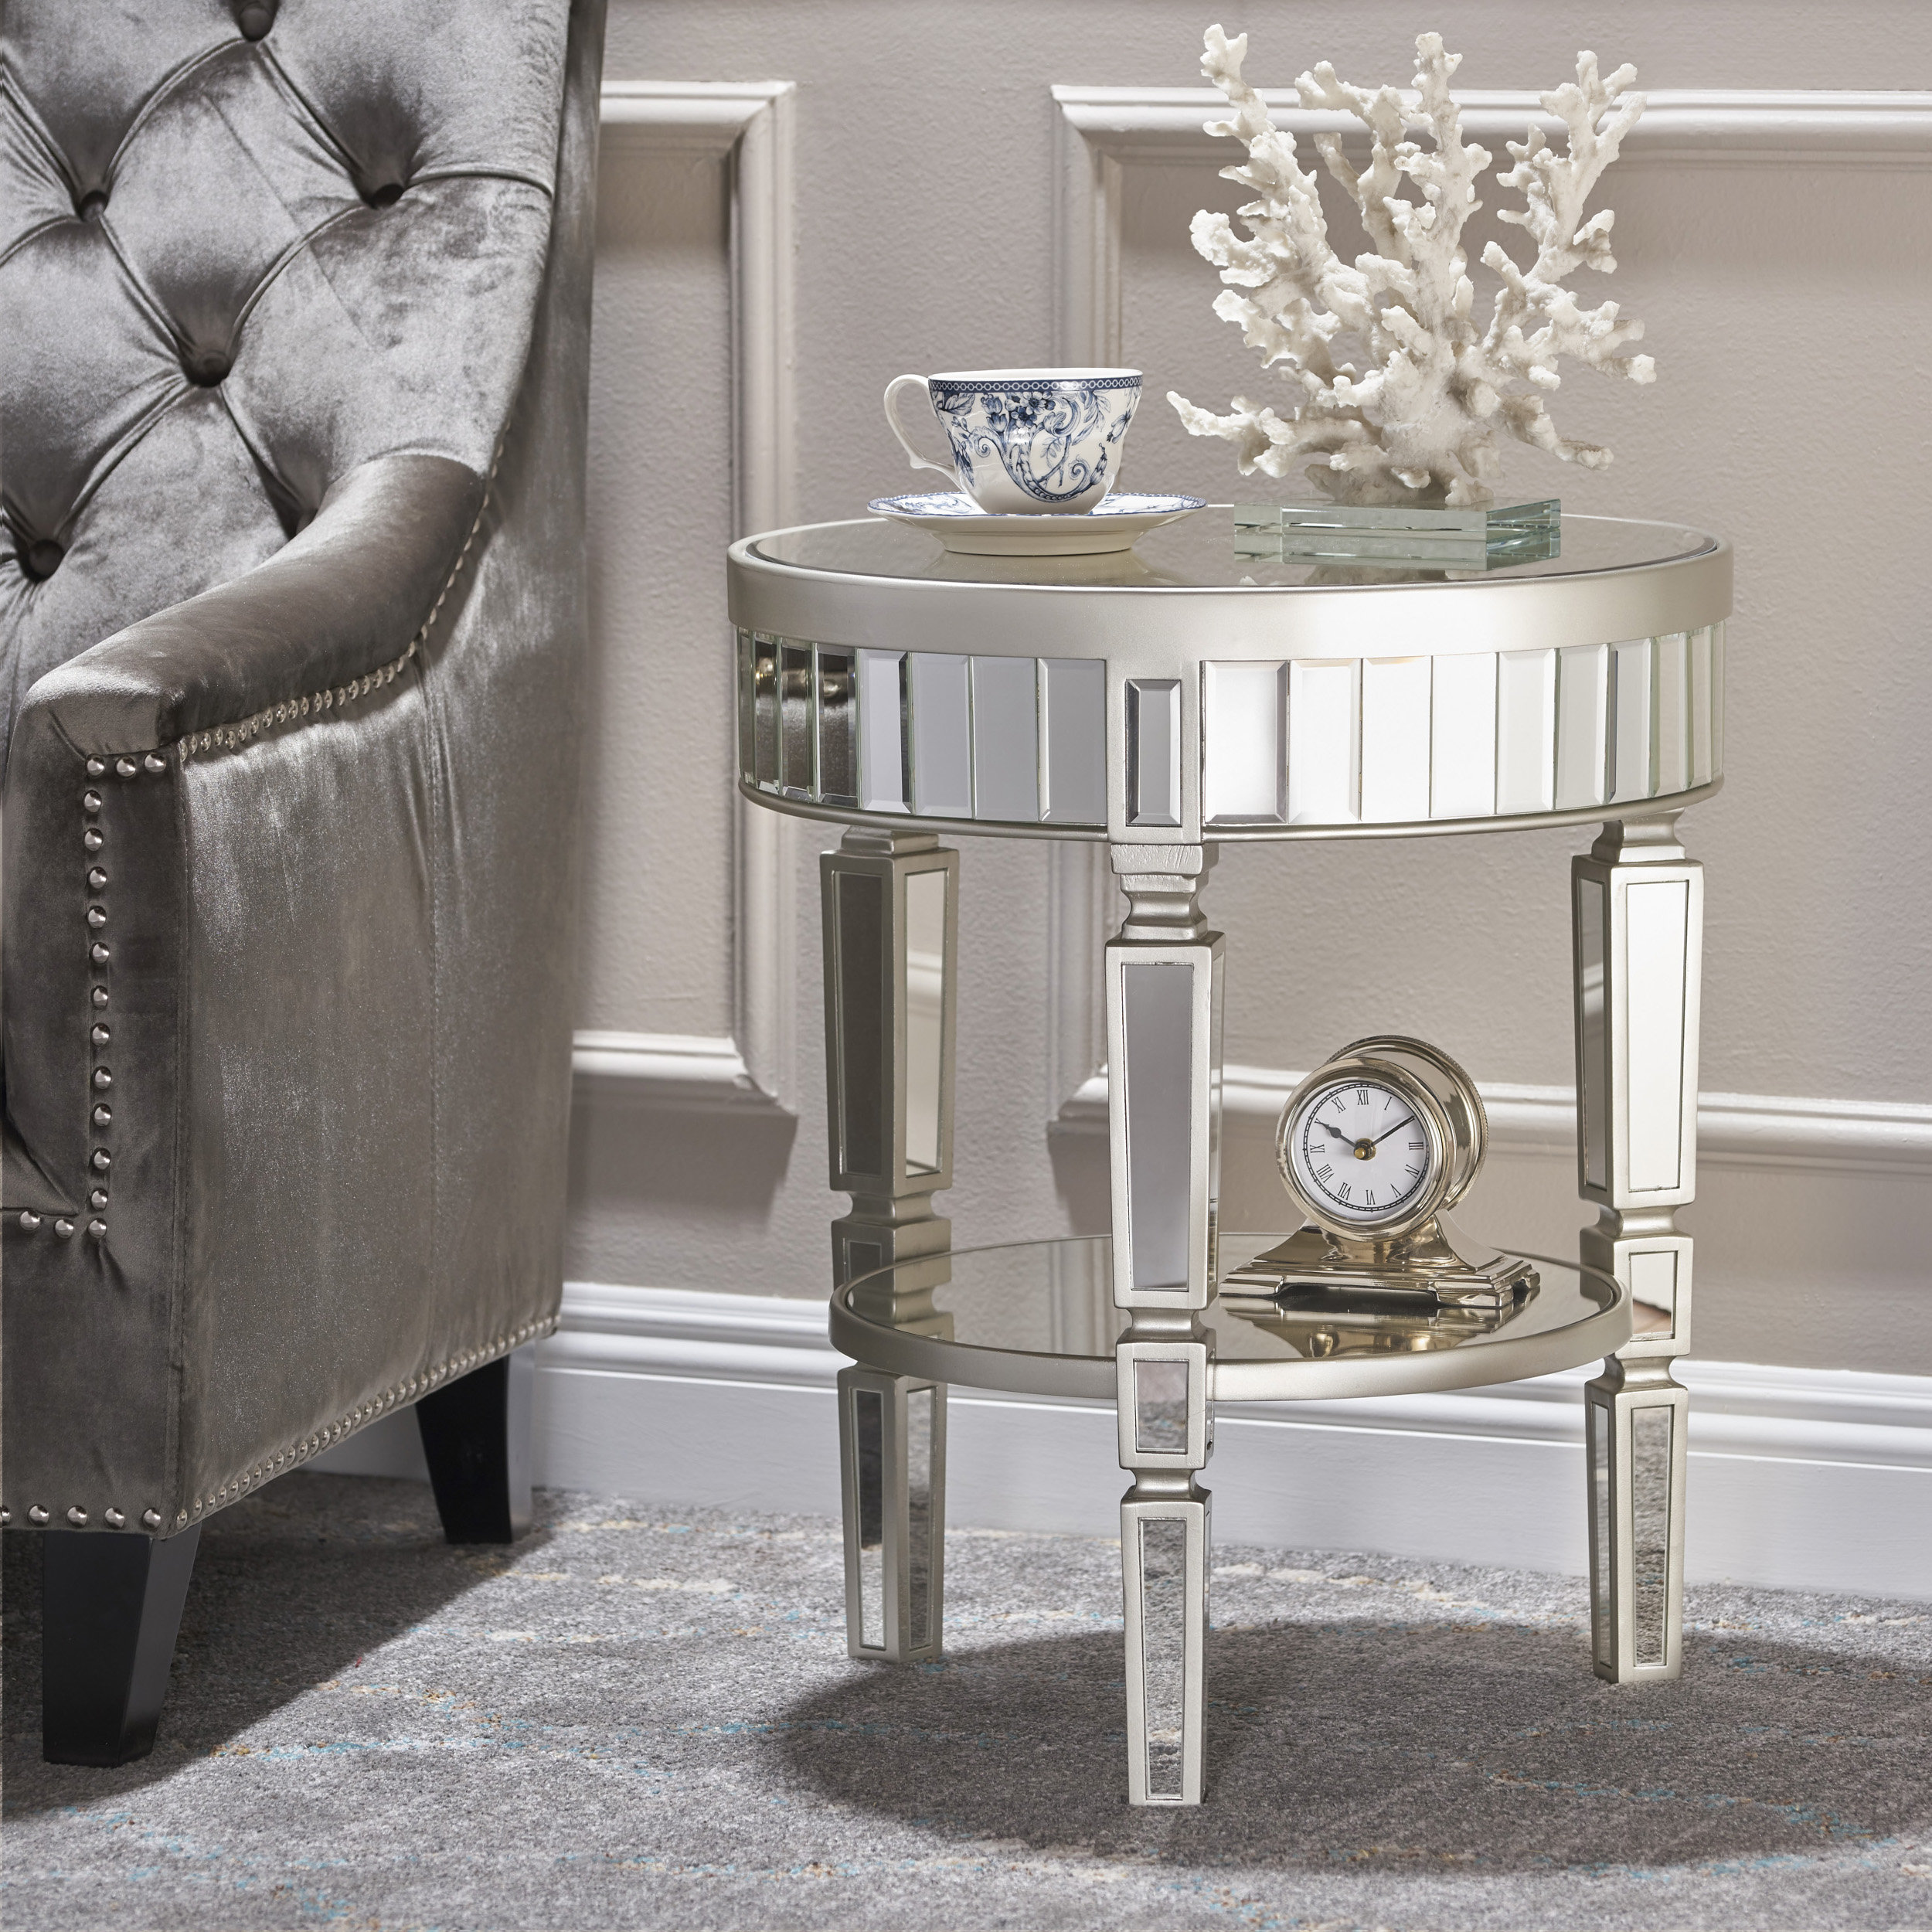 night table dimensions probably terrific great bedroom end tables dazzling mirrored for your home decor hollywood side white bedside small glass accent with drawer slate top